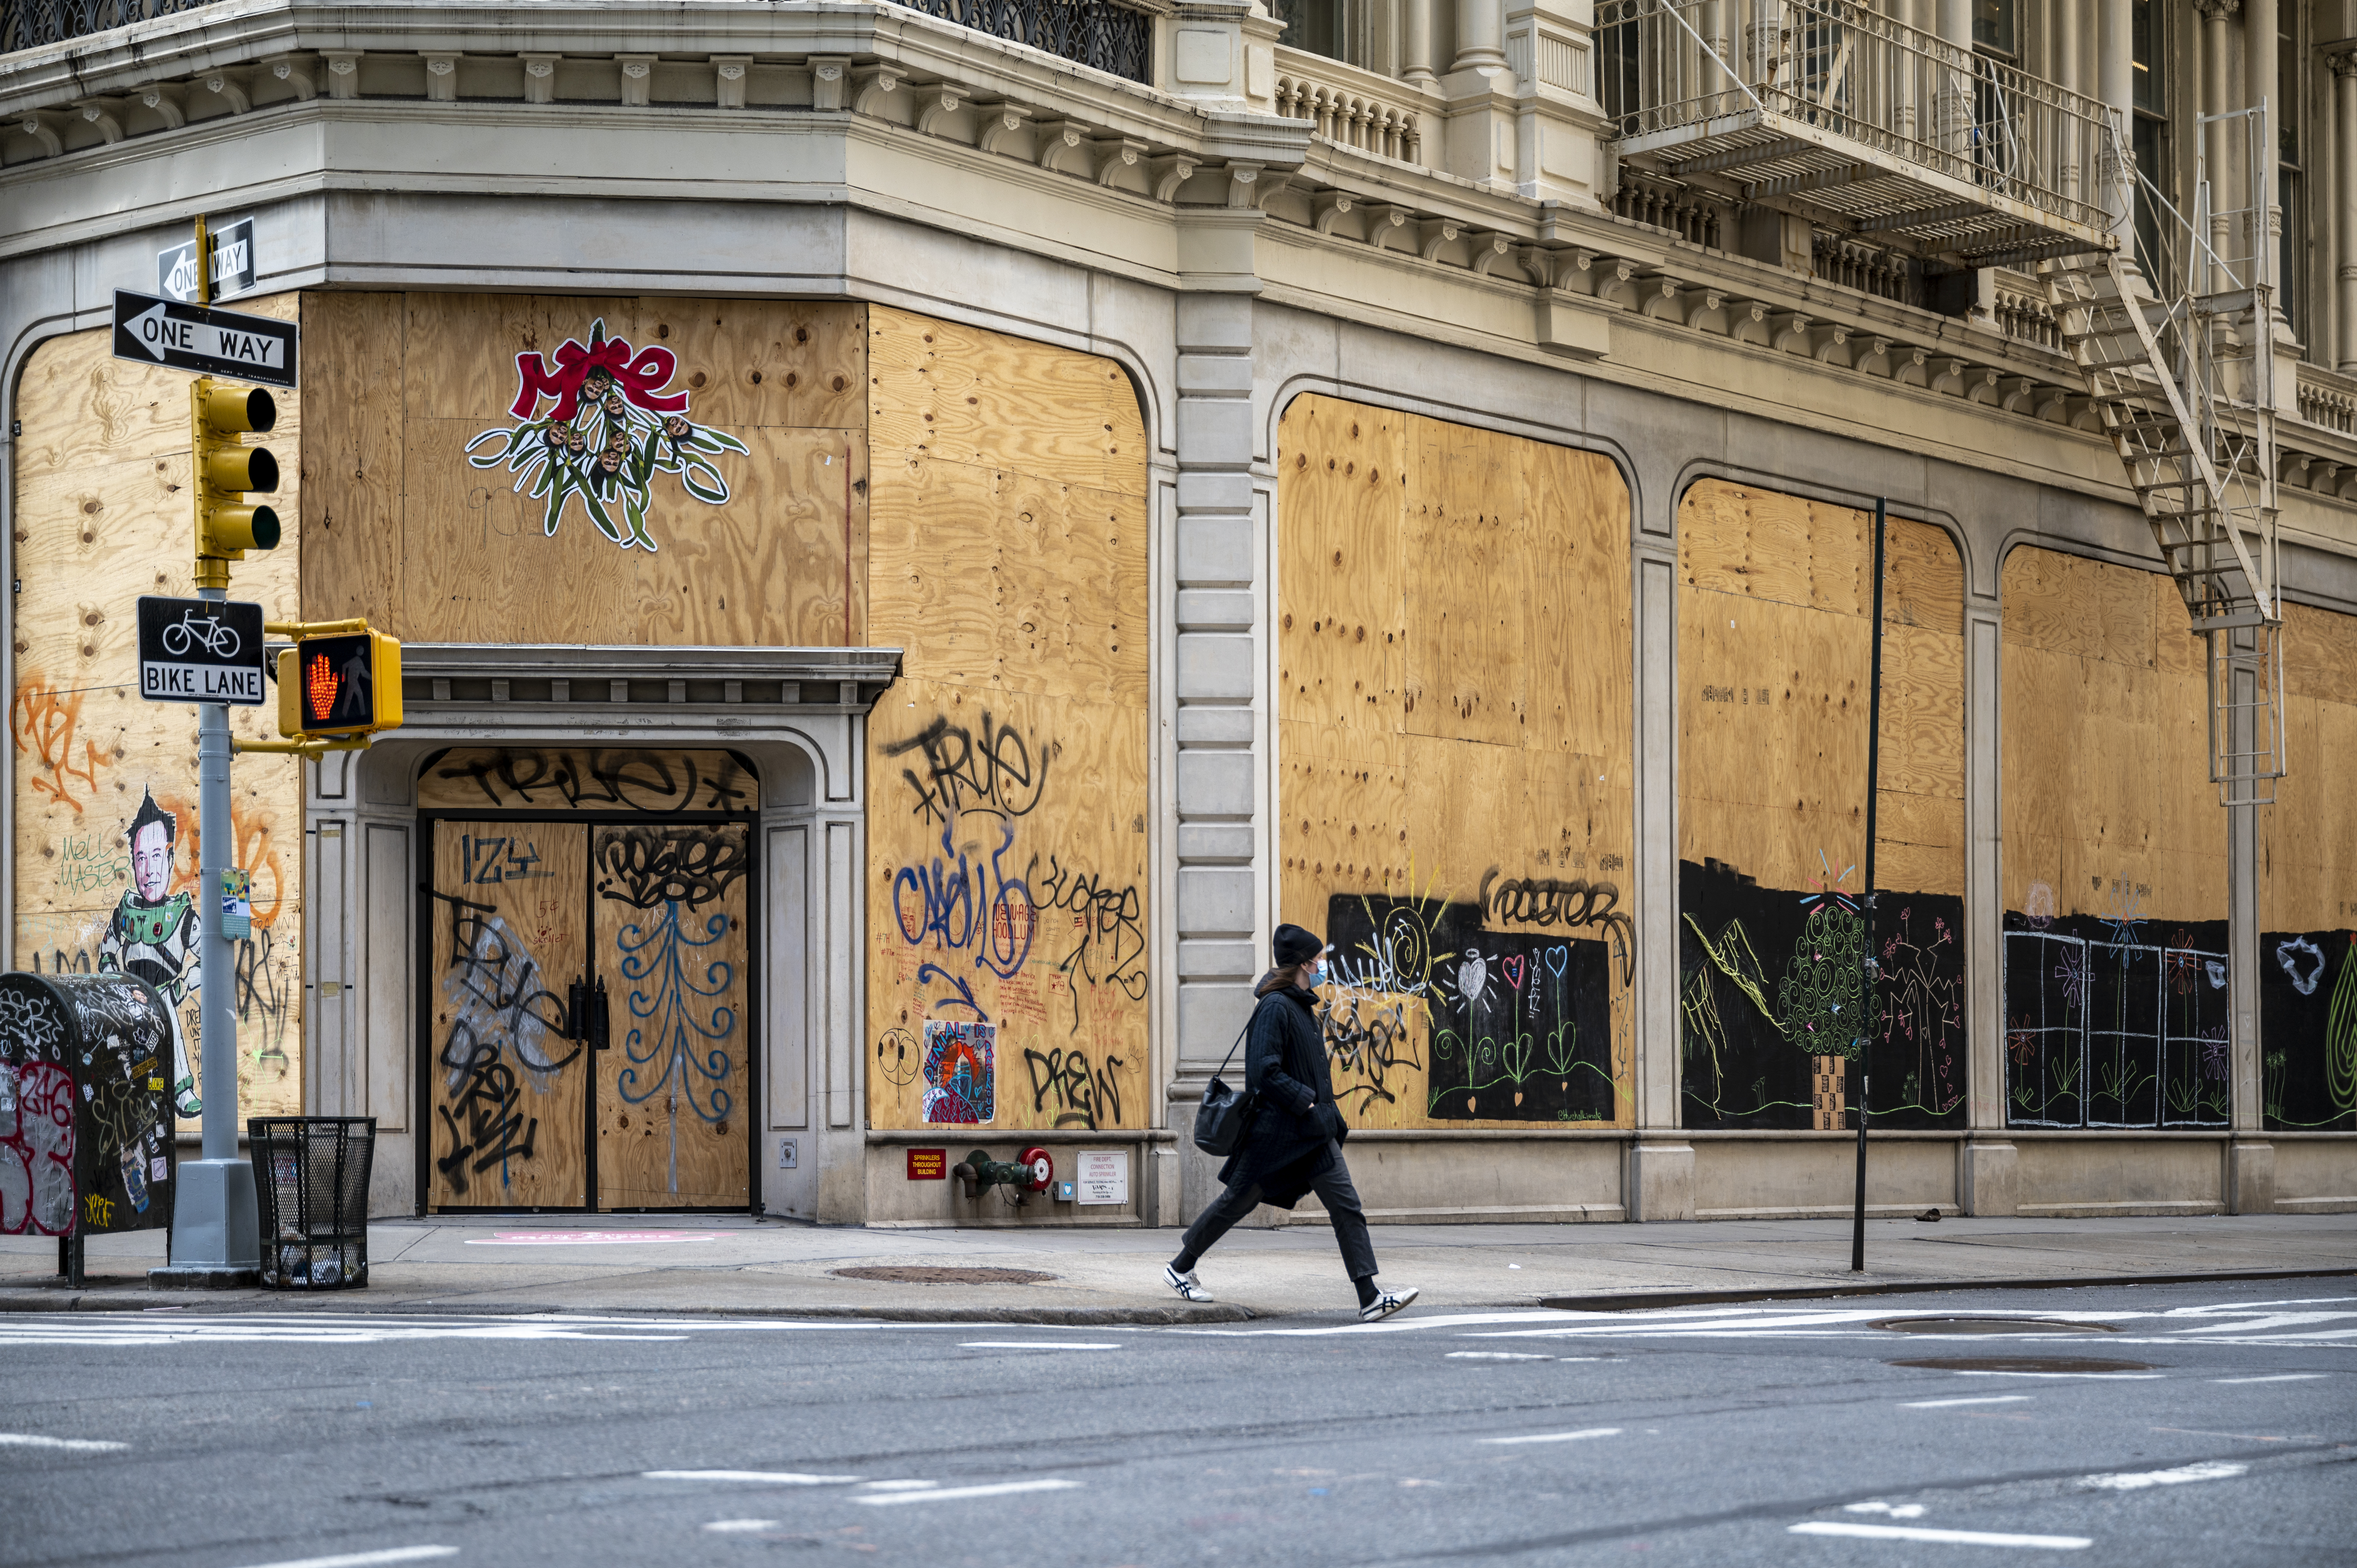 Signs of economic blight on East 20th Street and Broadway in Manhattan, Jan. 22, 2021.